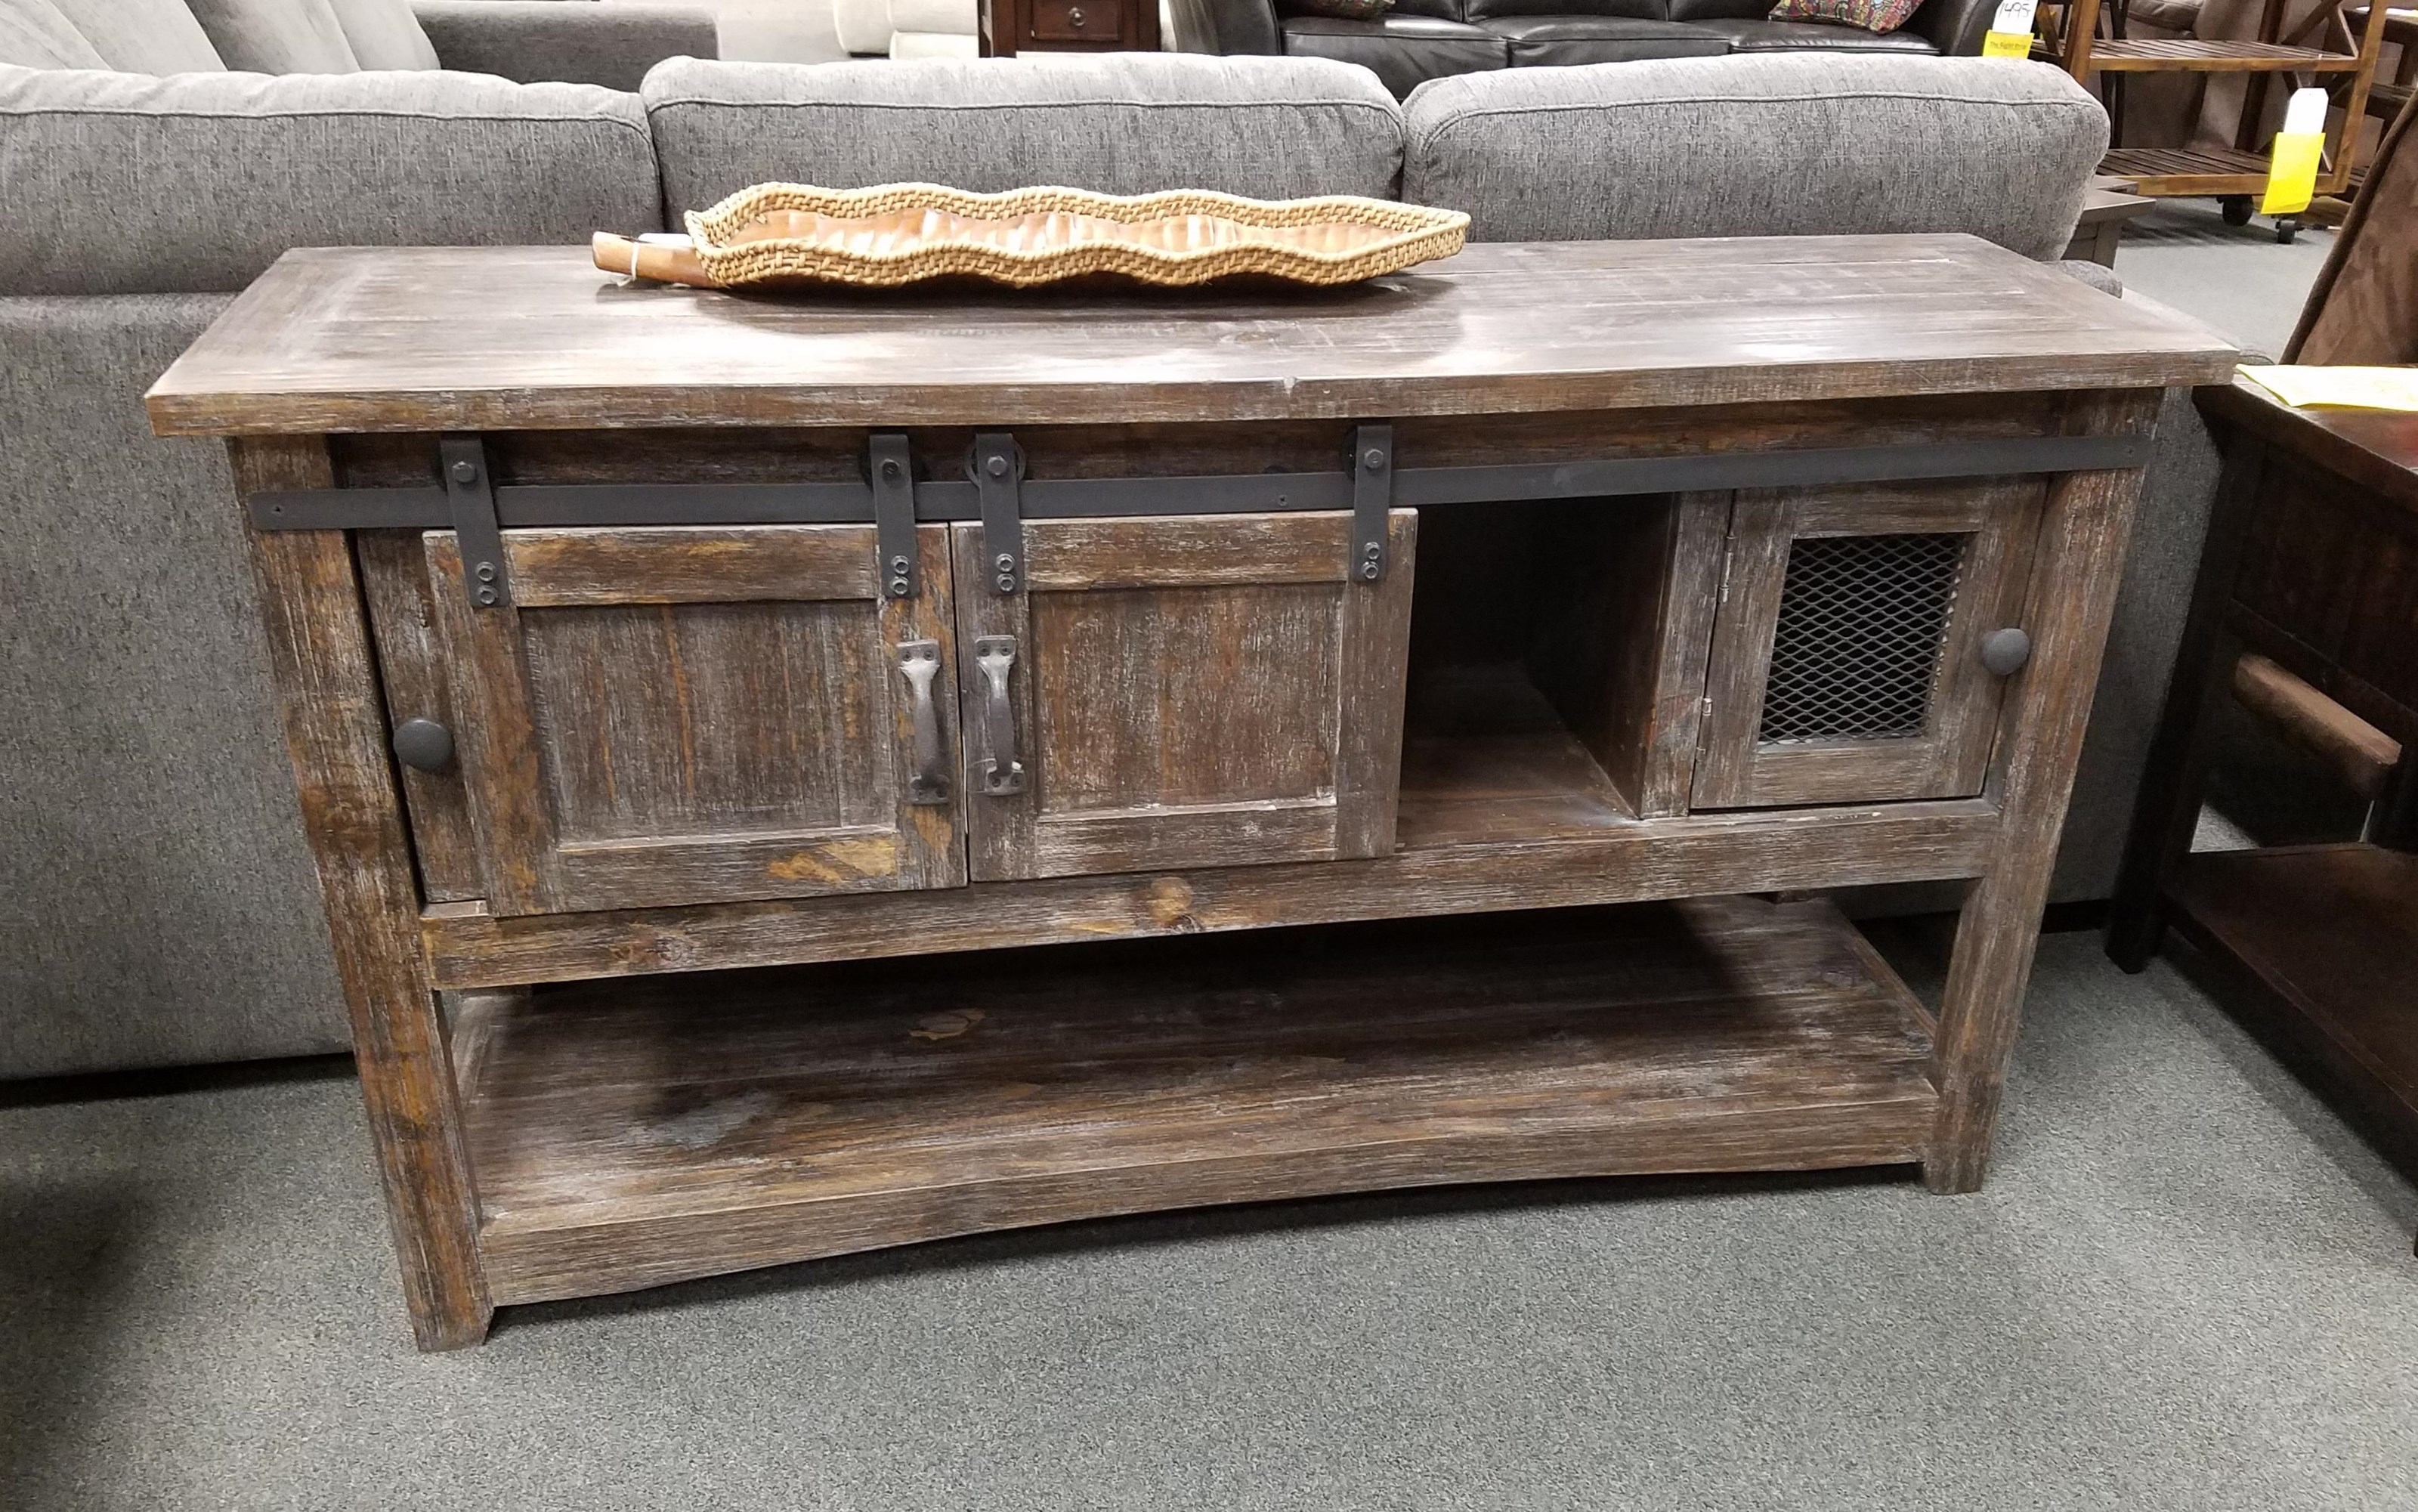 JON1027 Sofa Table by Vintage at Rife's Home Furniture